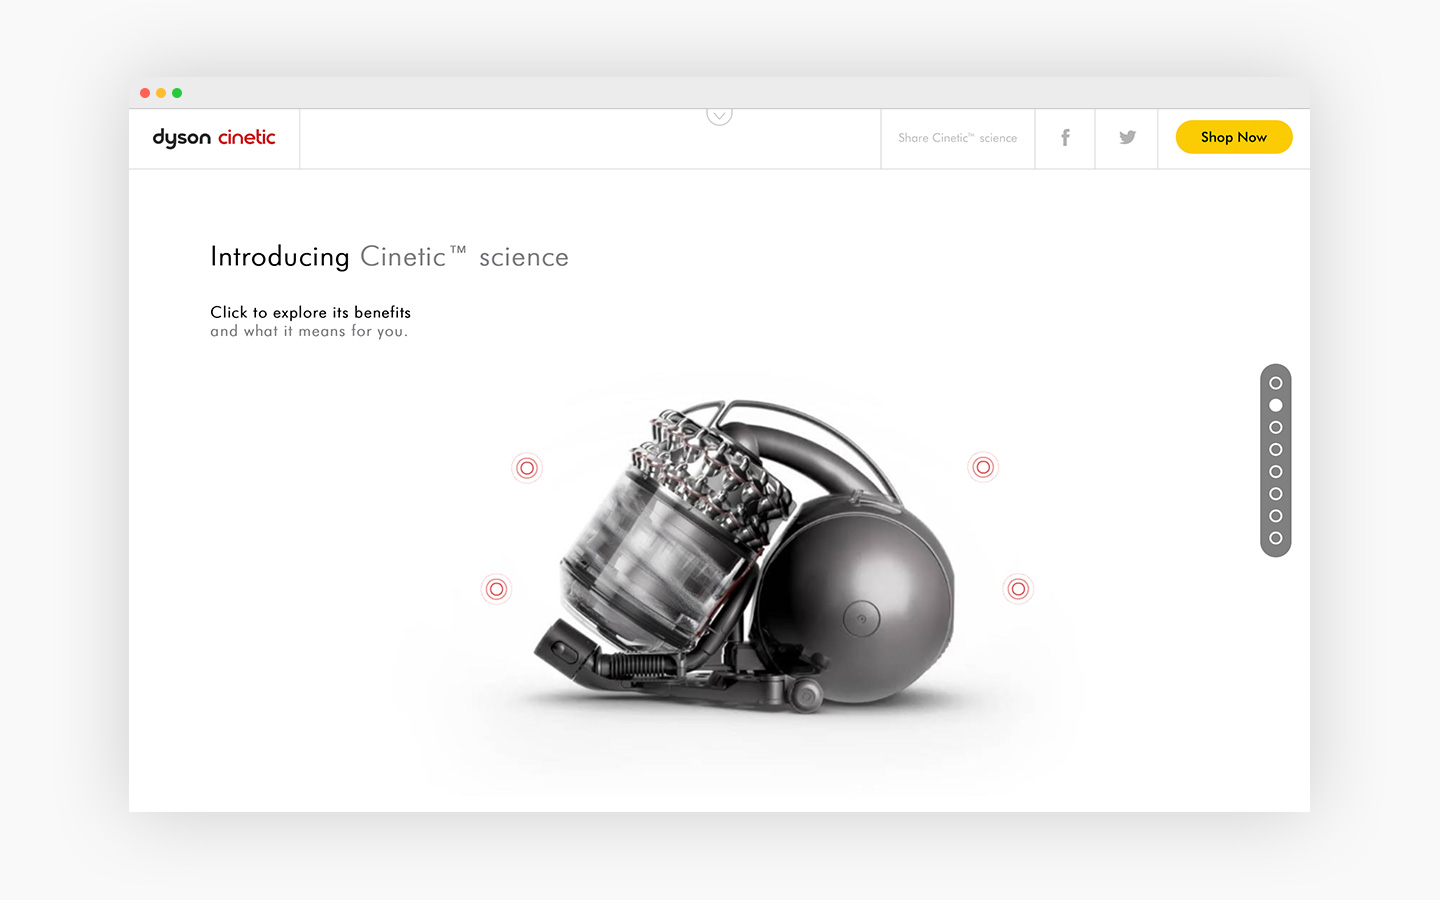 Nectar-&-Co_Dyson-Cinetic-homepage-webdesign-3.jpg